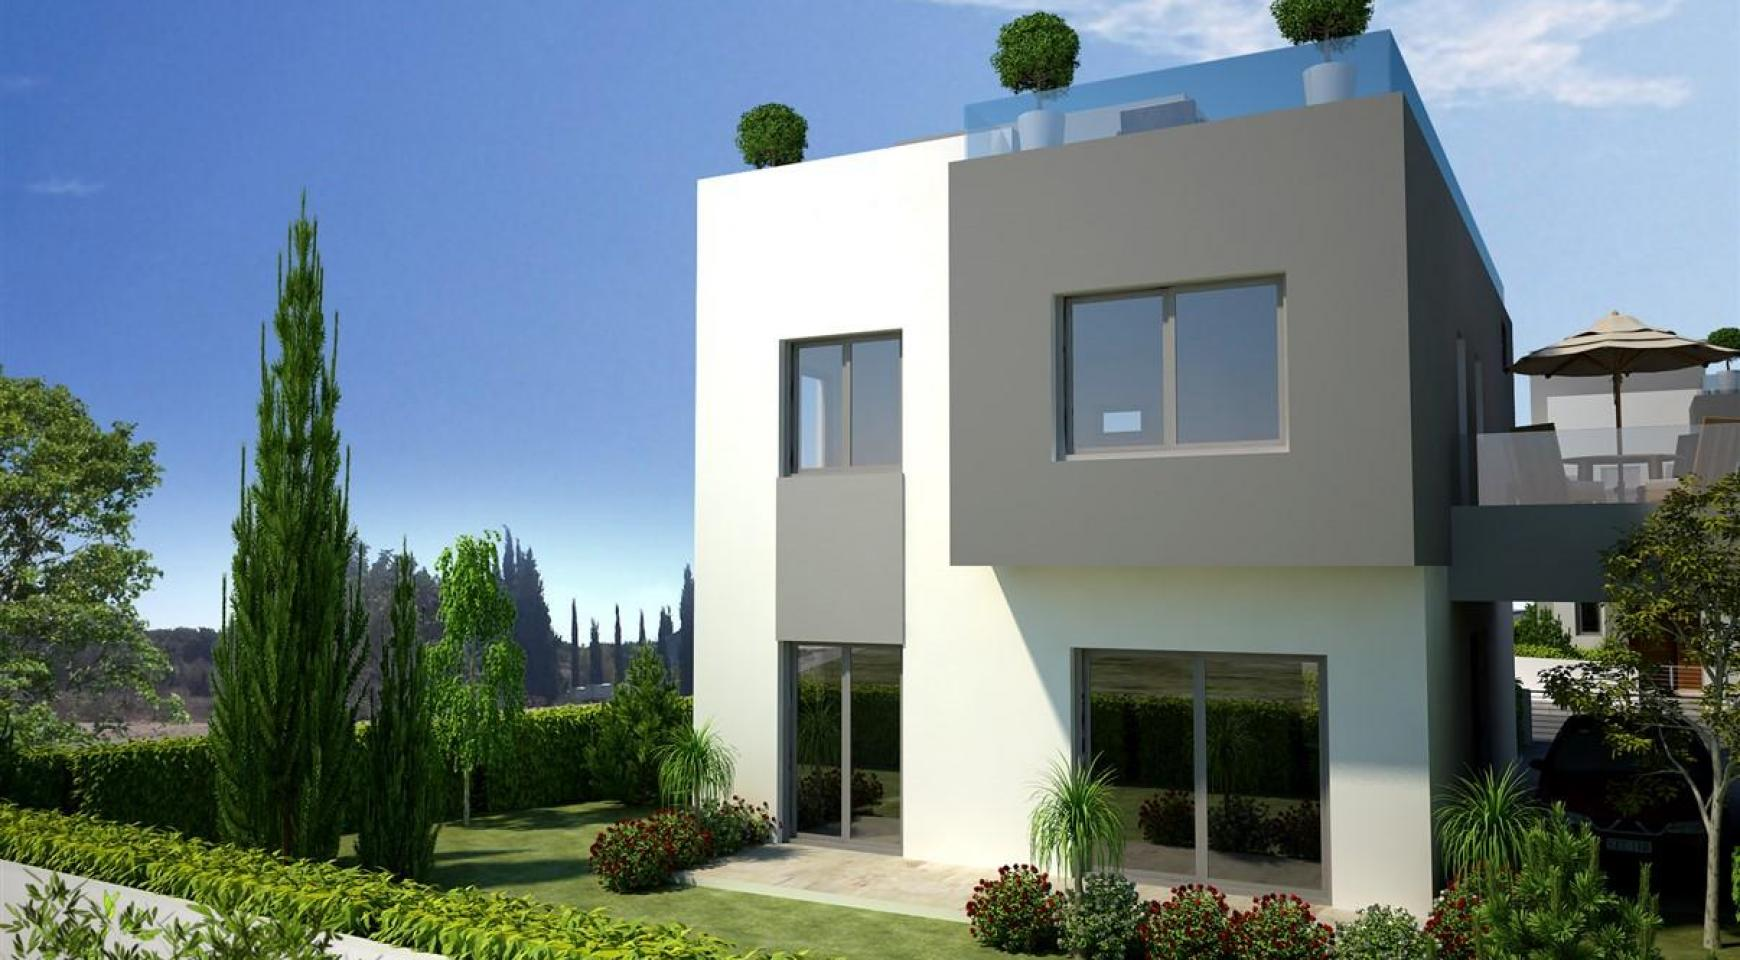 3 Bedroom Villa in a New Project - 30